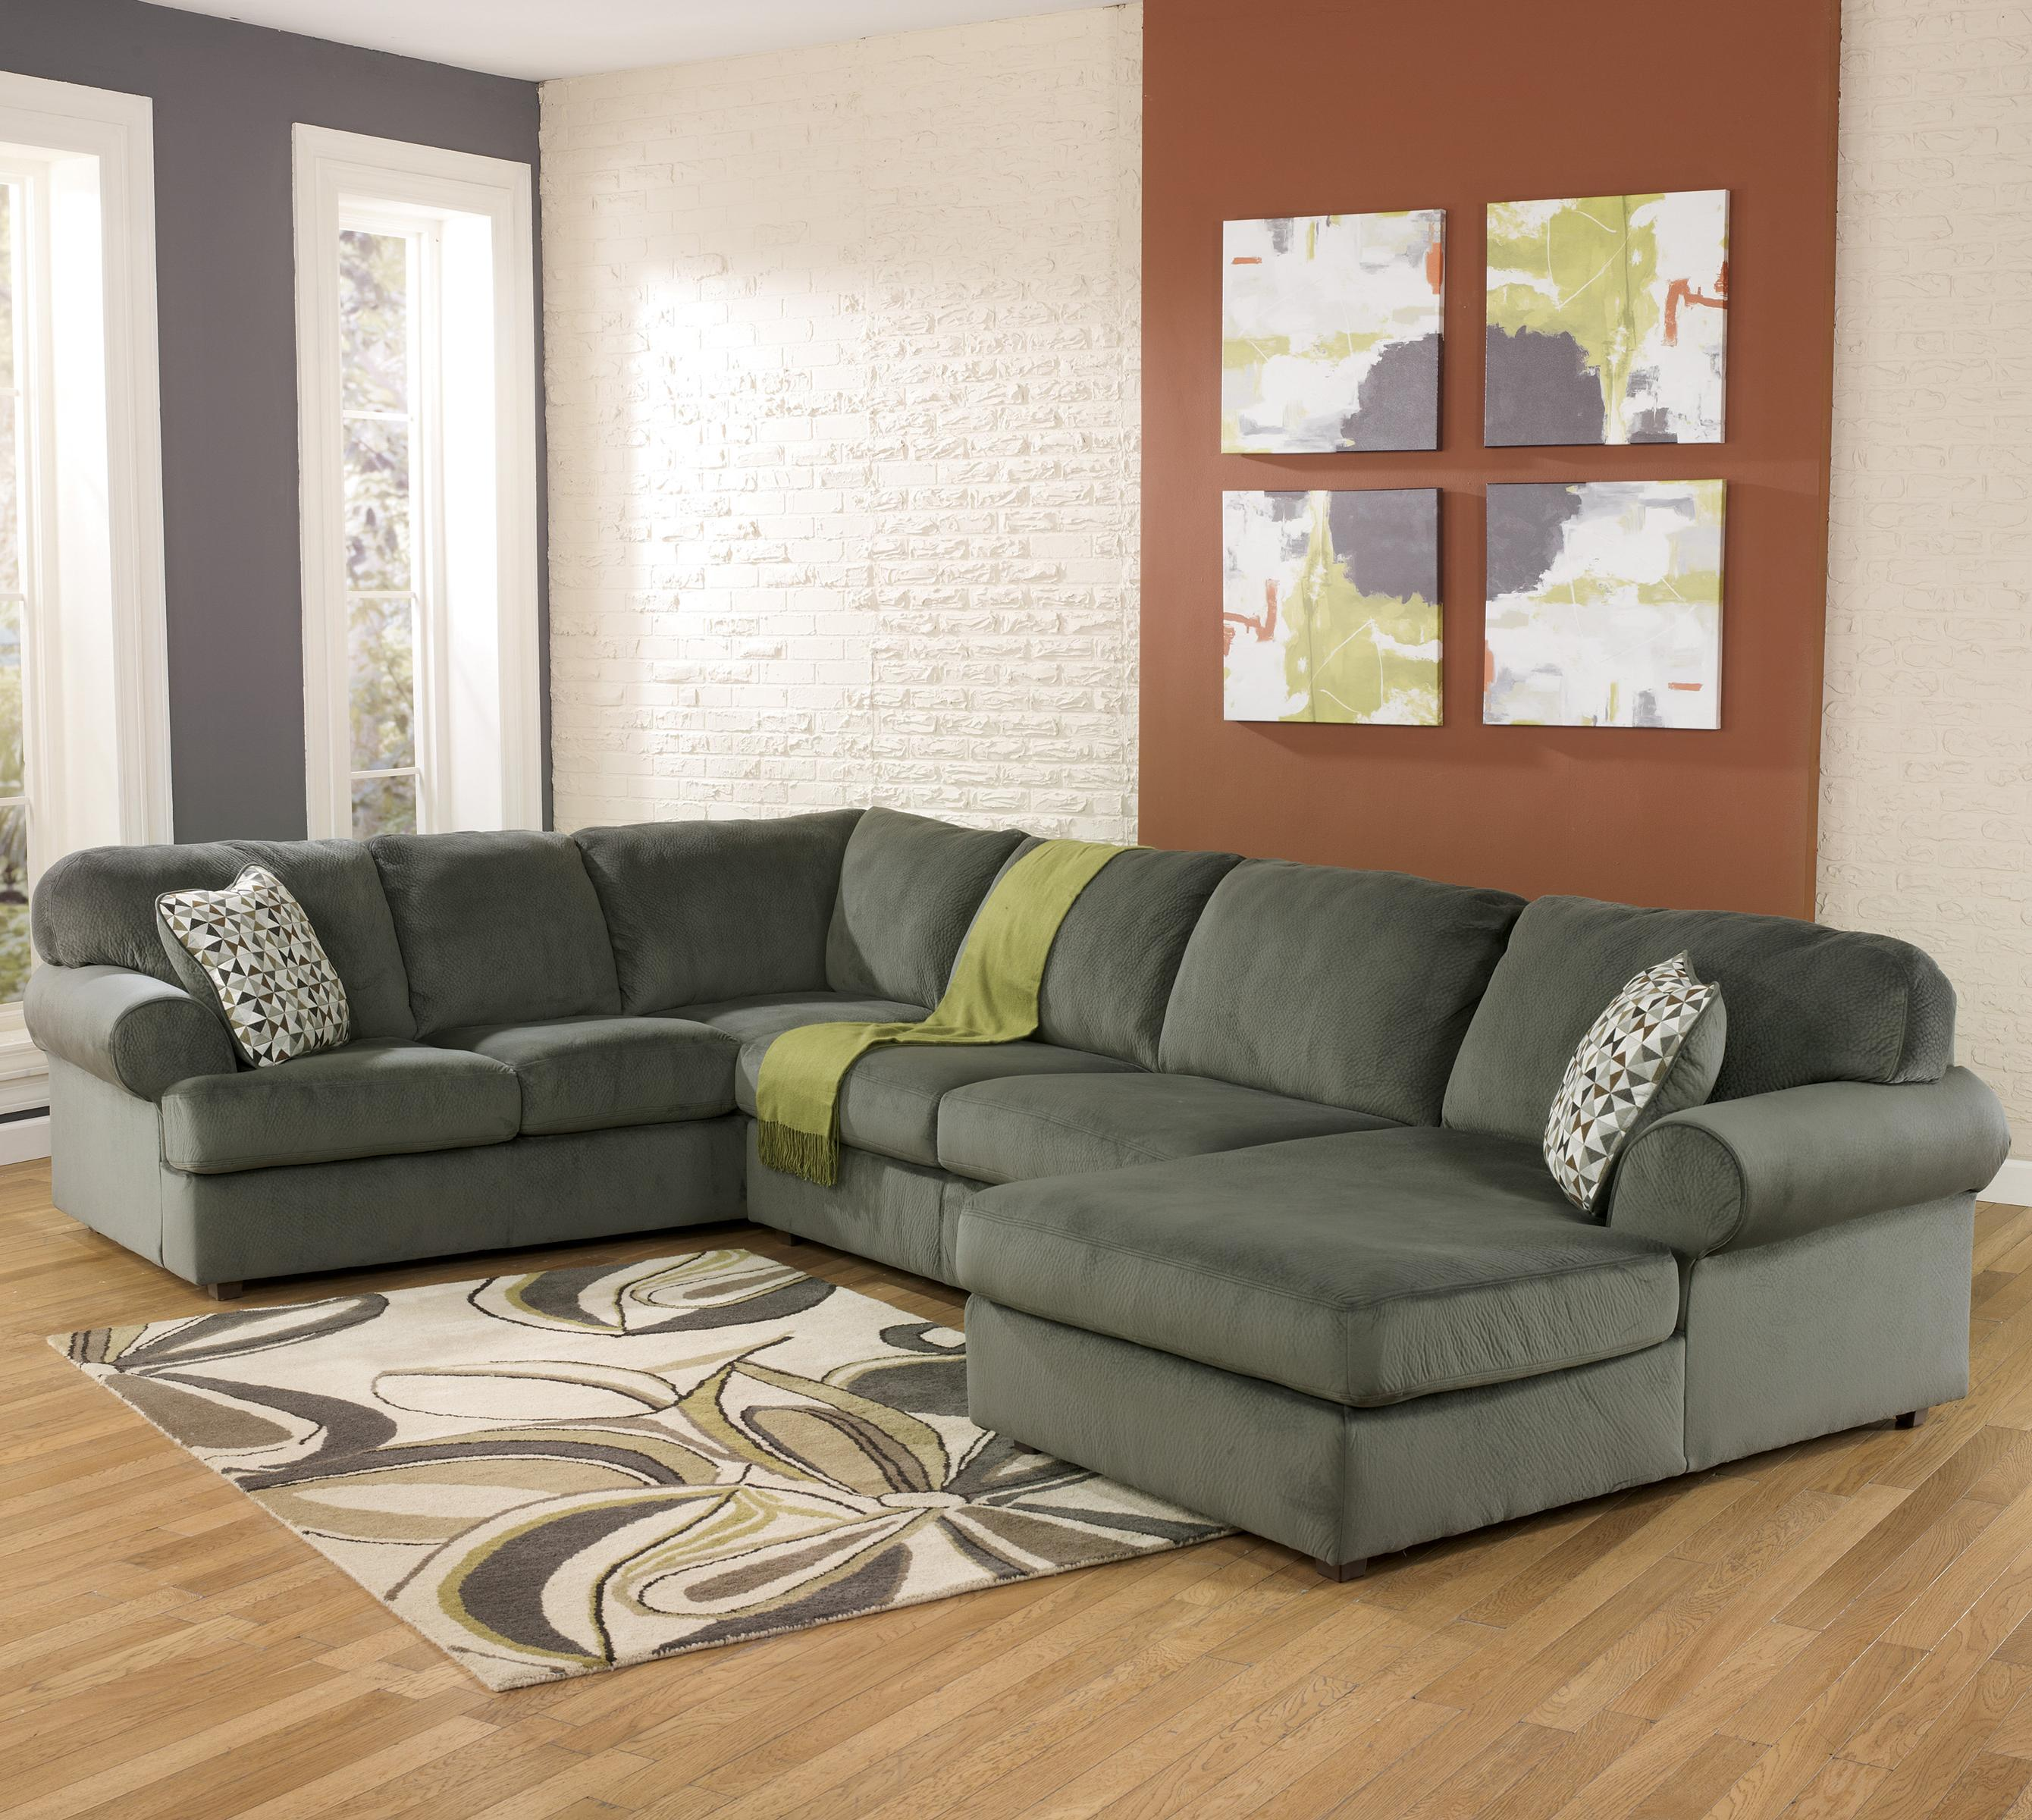 design reviews sectional sleeper teri corduroy s joss furniture u tremendous of main full sofa best size couch couches ashley